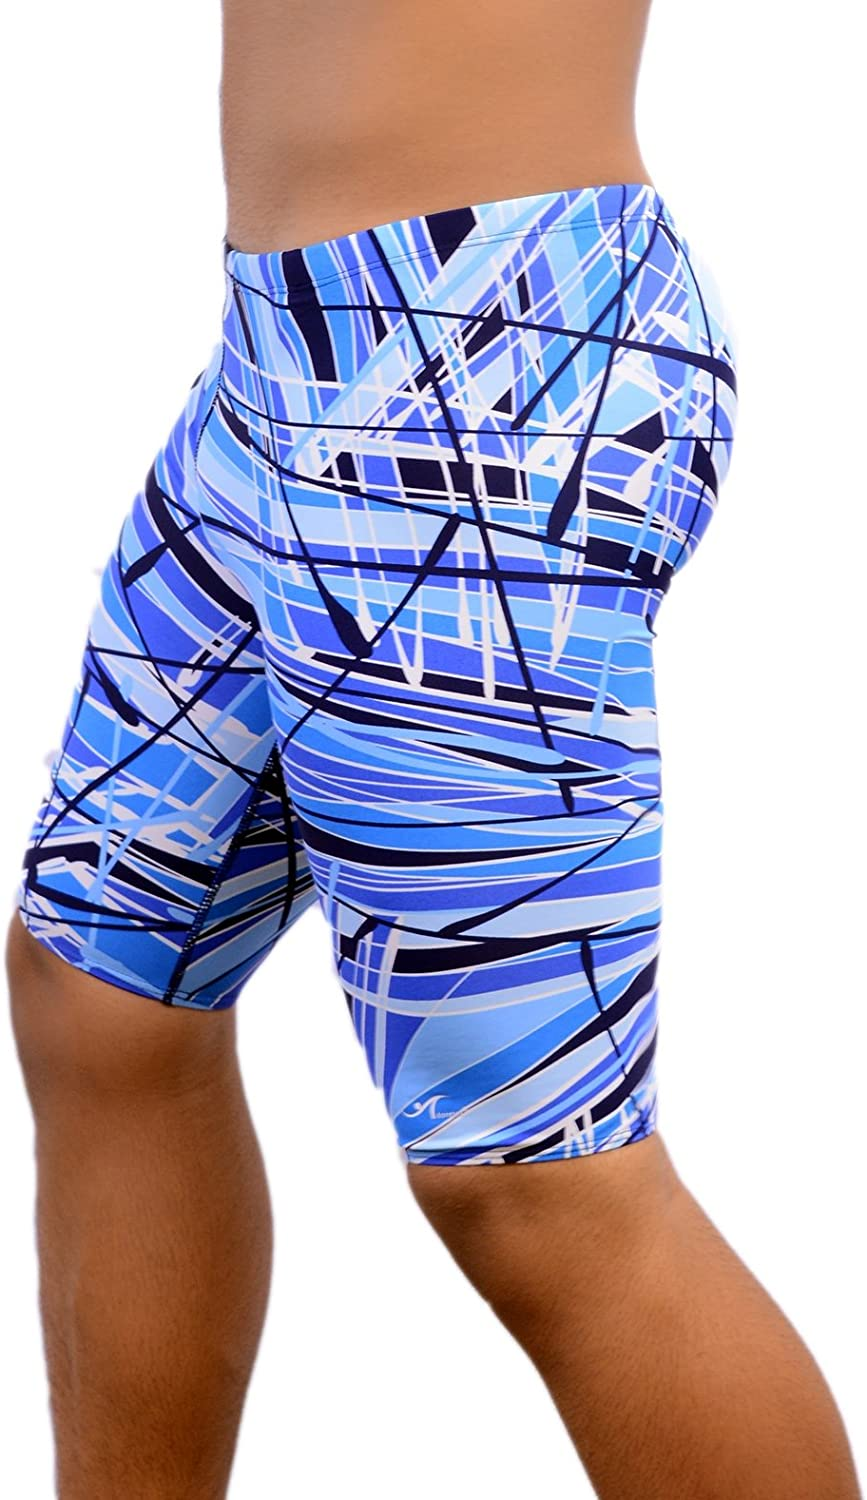 Lowest price challenge Ultrastar Boy's Men's Printed Pro Athletic Opening large release sale Swim Swimsuit Jammers